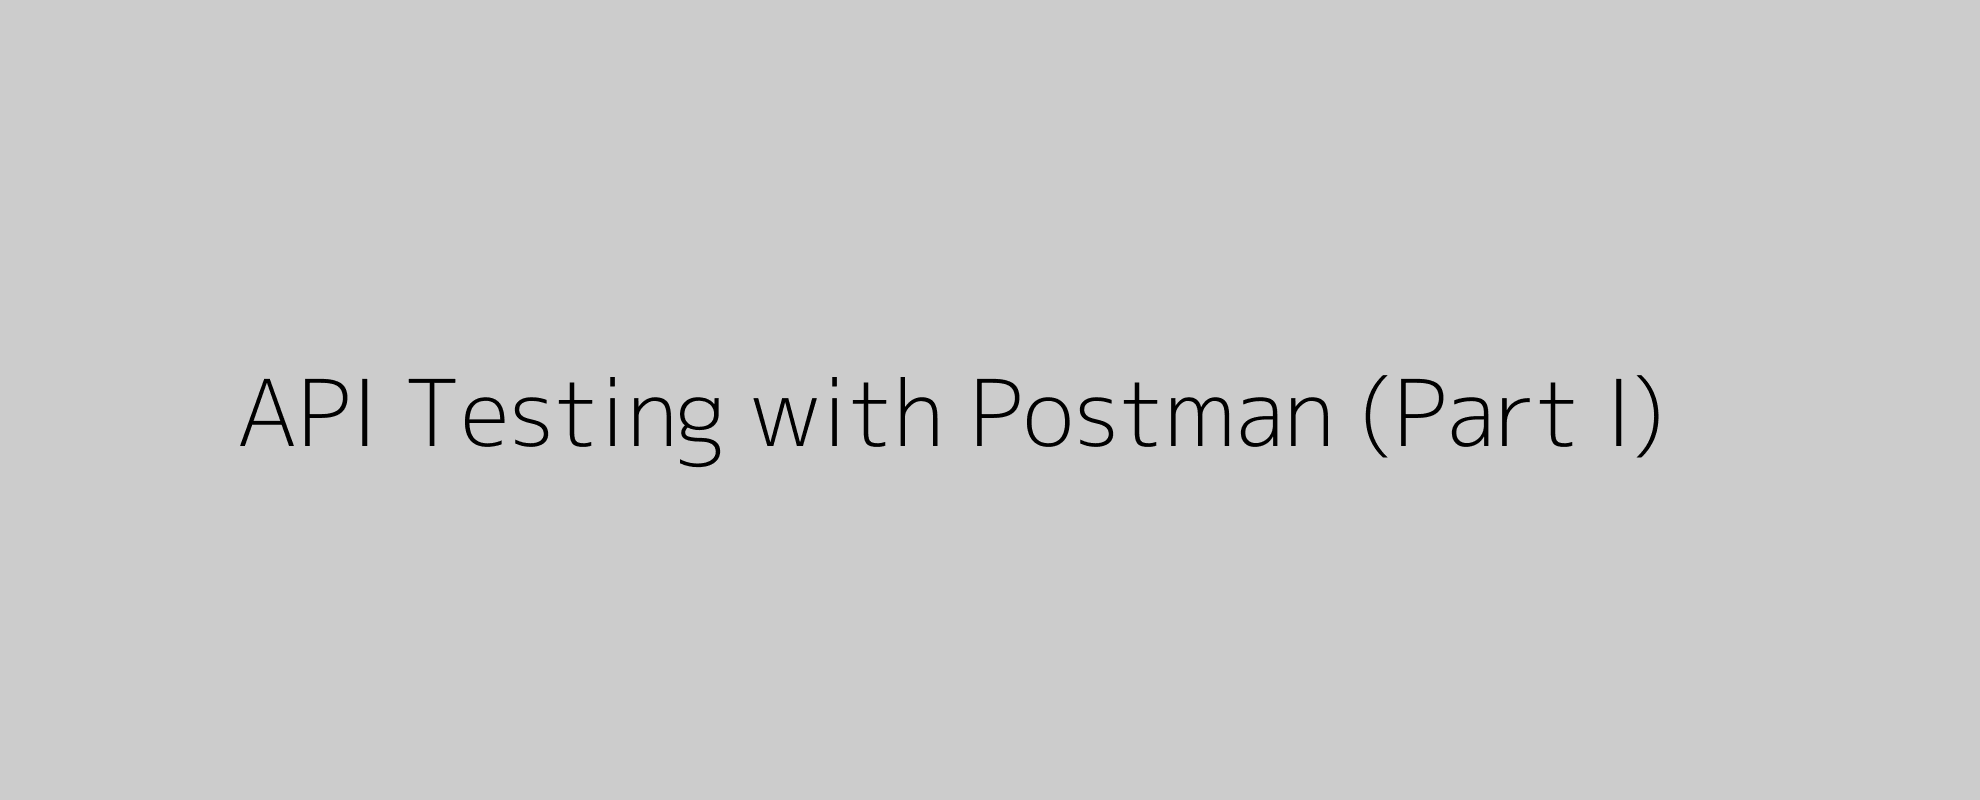 API Testing with Postman (Part I)